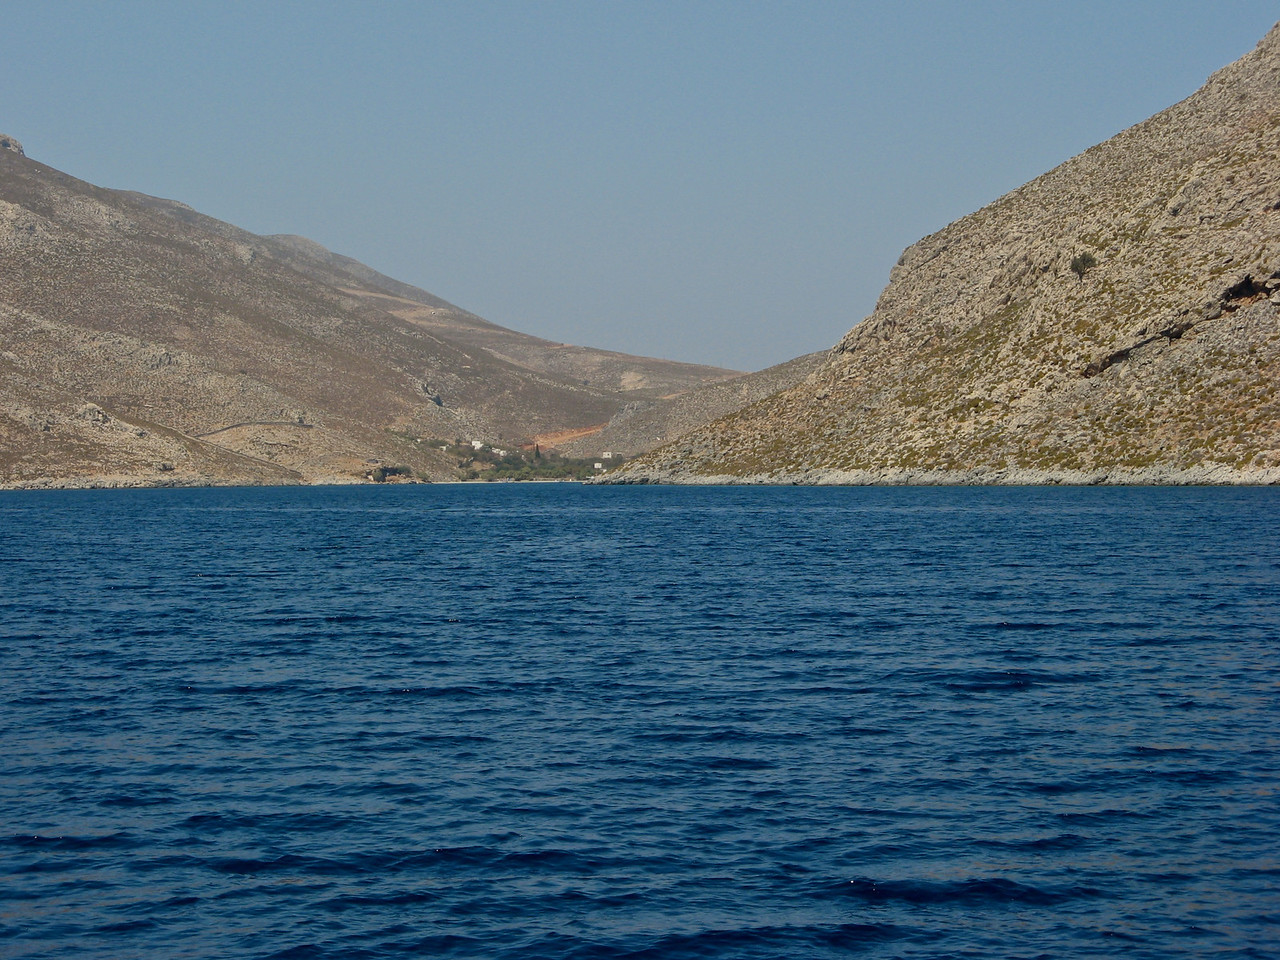 Straight ahead is Kalymnos, our first stop after 3 hours of sailing.  <br /> <br /> Kalymnos,belongs to the Dodecanese and is located to the west of the peninsula of Bodrum (the ancient Halicarnassos), between the islands of Kos (south, at a distance of 12 km) and Leros (north, at a distance of less than 2 km): the latter is linked to it through a series of islets. <br /> <br /> In 2001 the island had a population of 16,235, making it the third most populous island of the Dodecanese,<br /> <br />  It is known in Greece for the affluence of much of its population, and also stands as one of the wealthiest Greek islands overall.